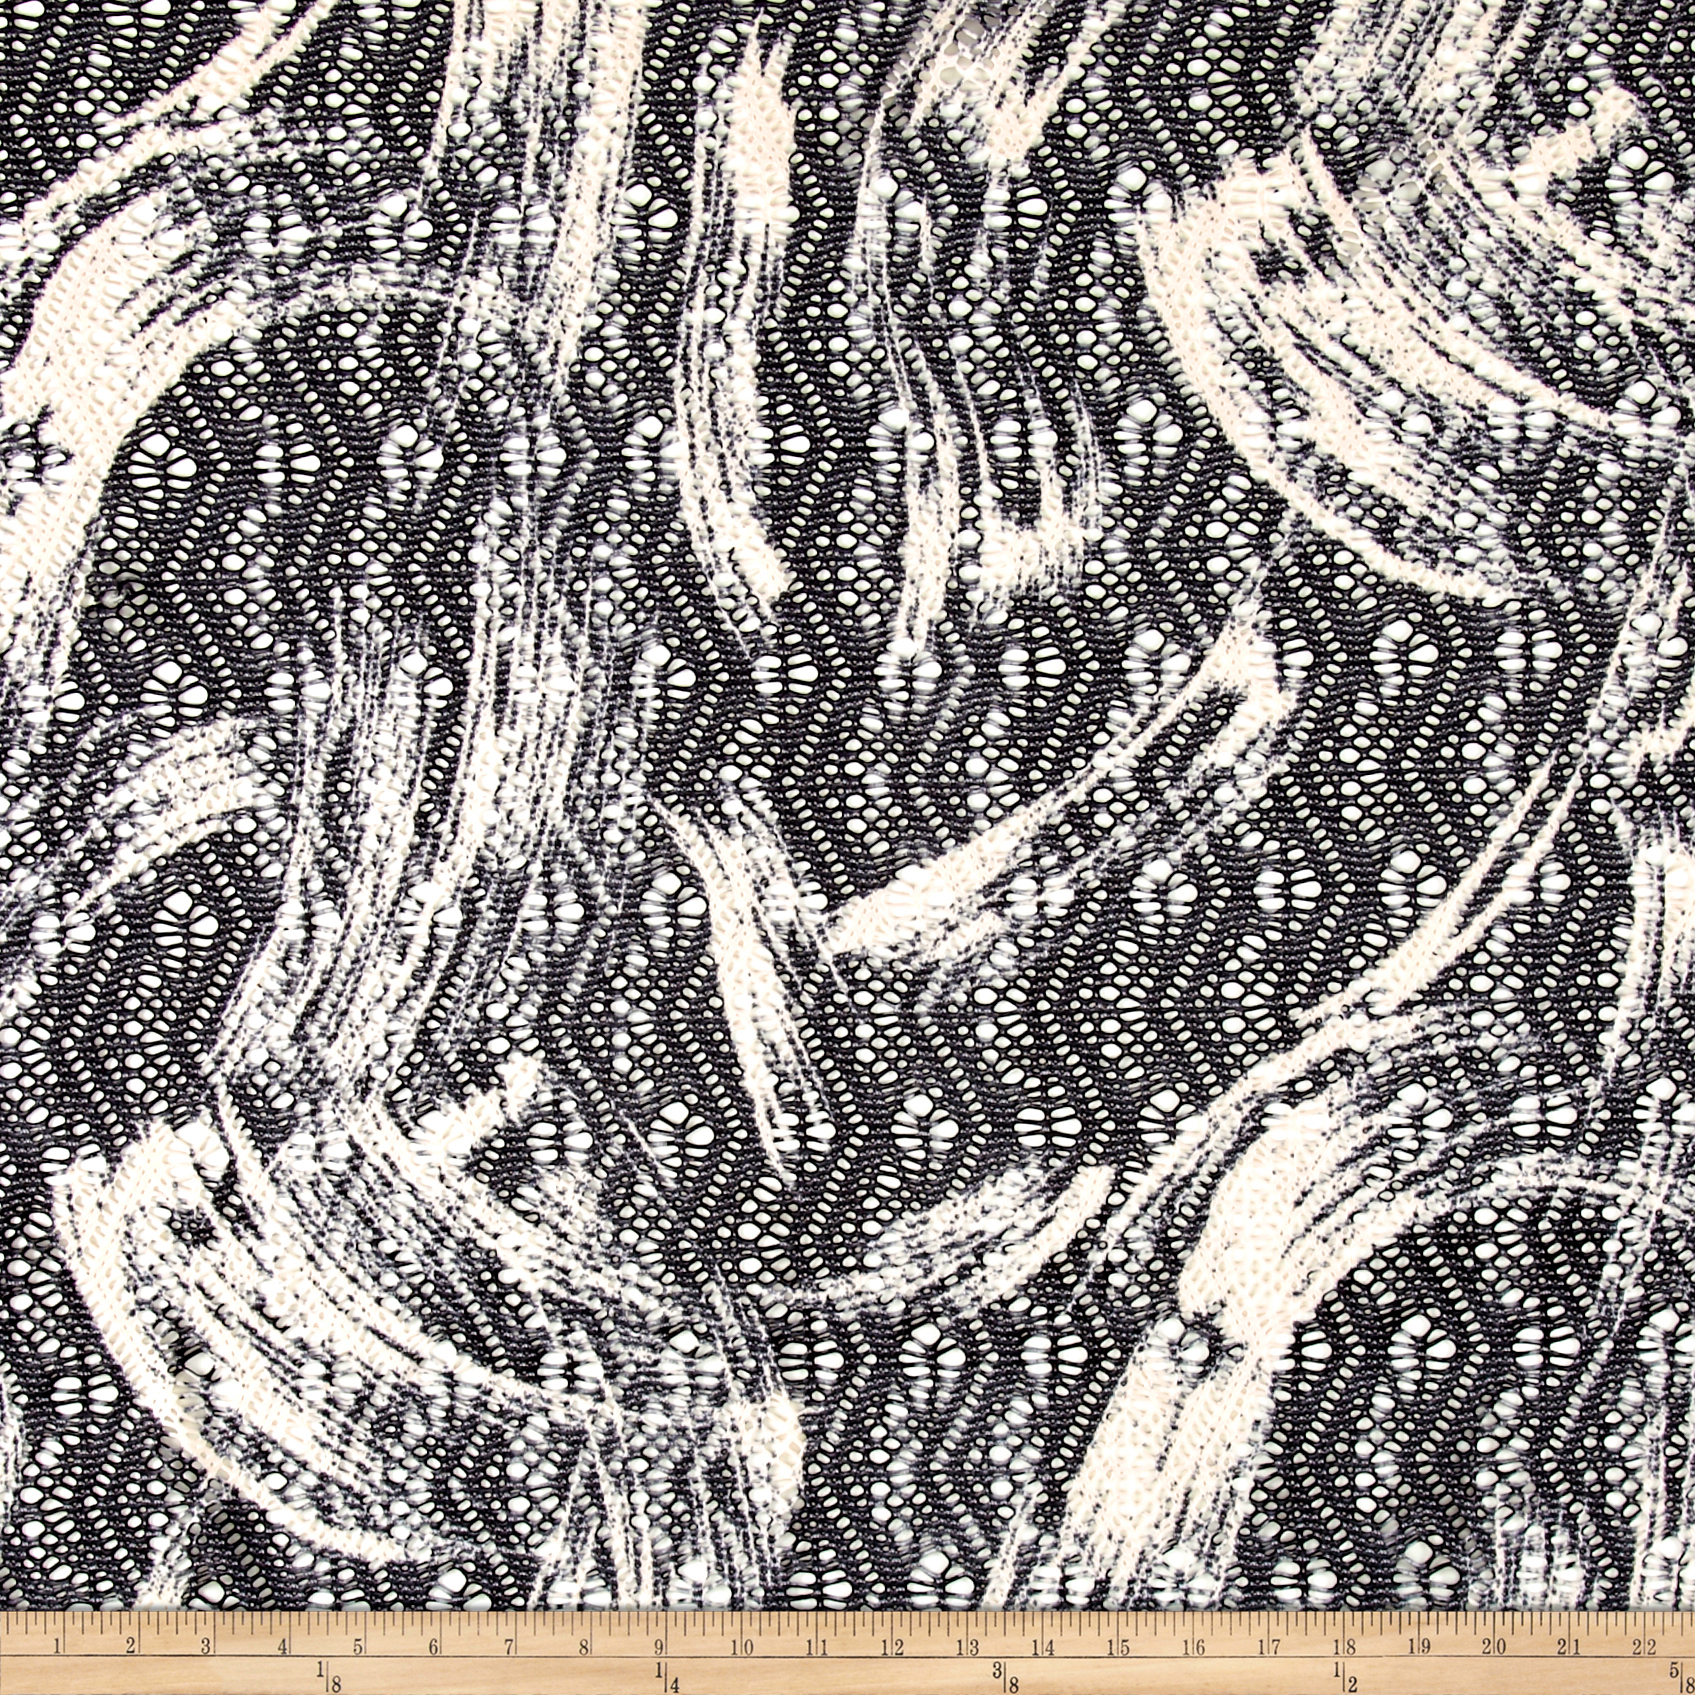 Stretch Mesh Abstract Black/White Fabric